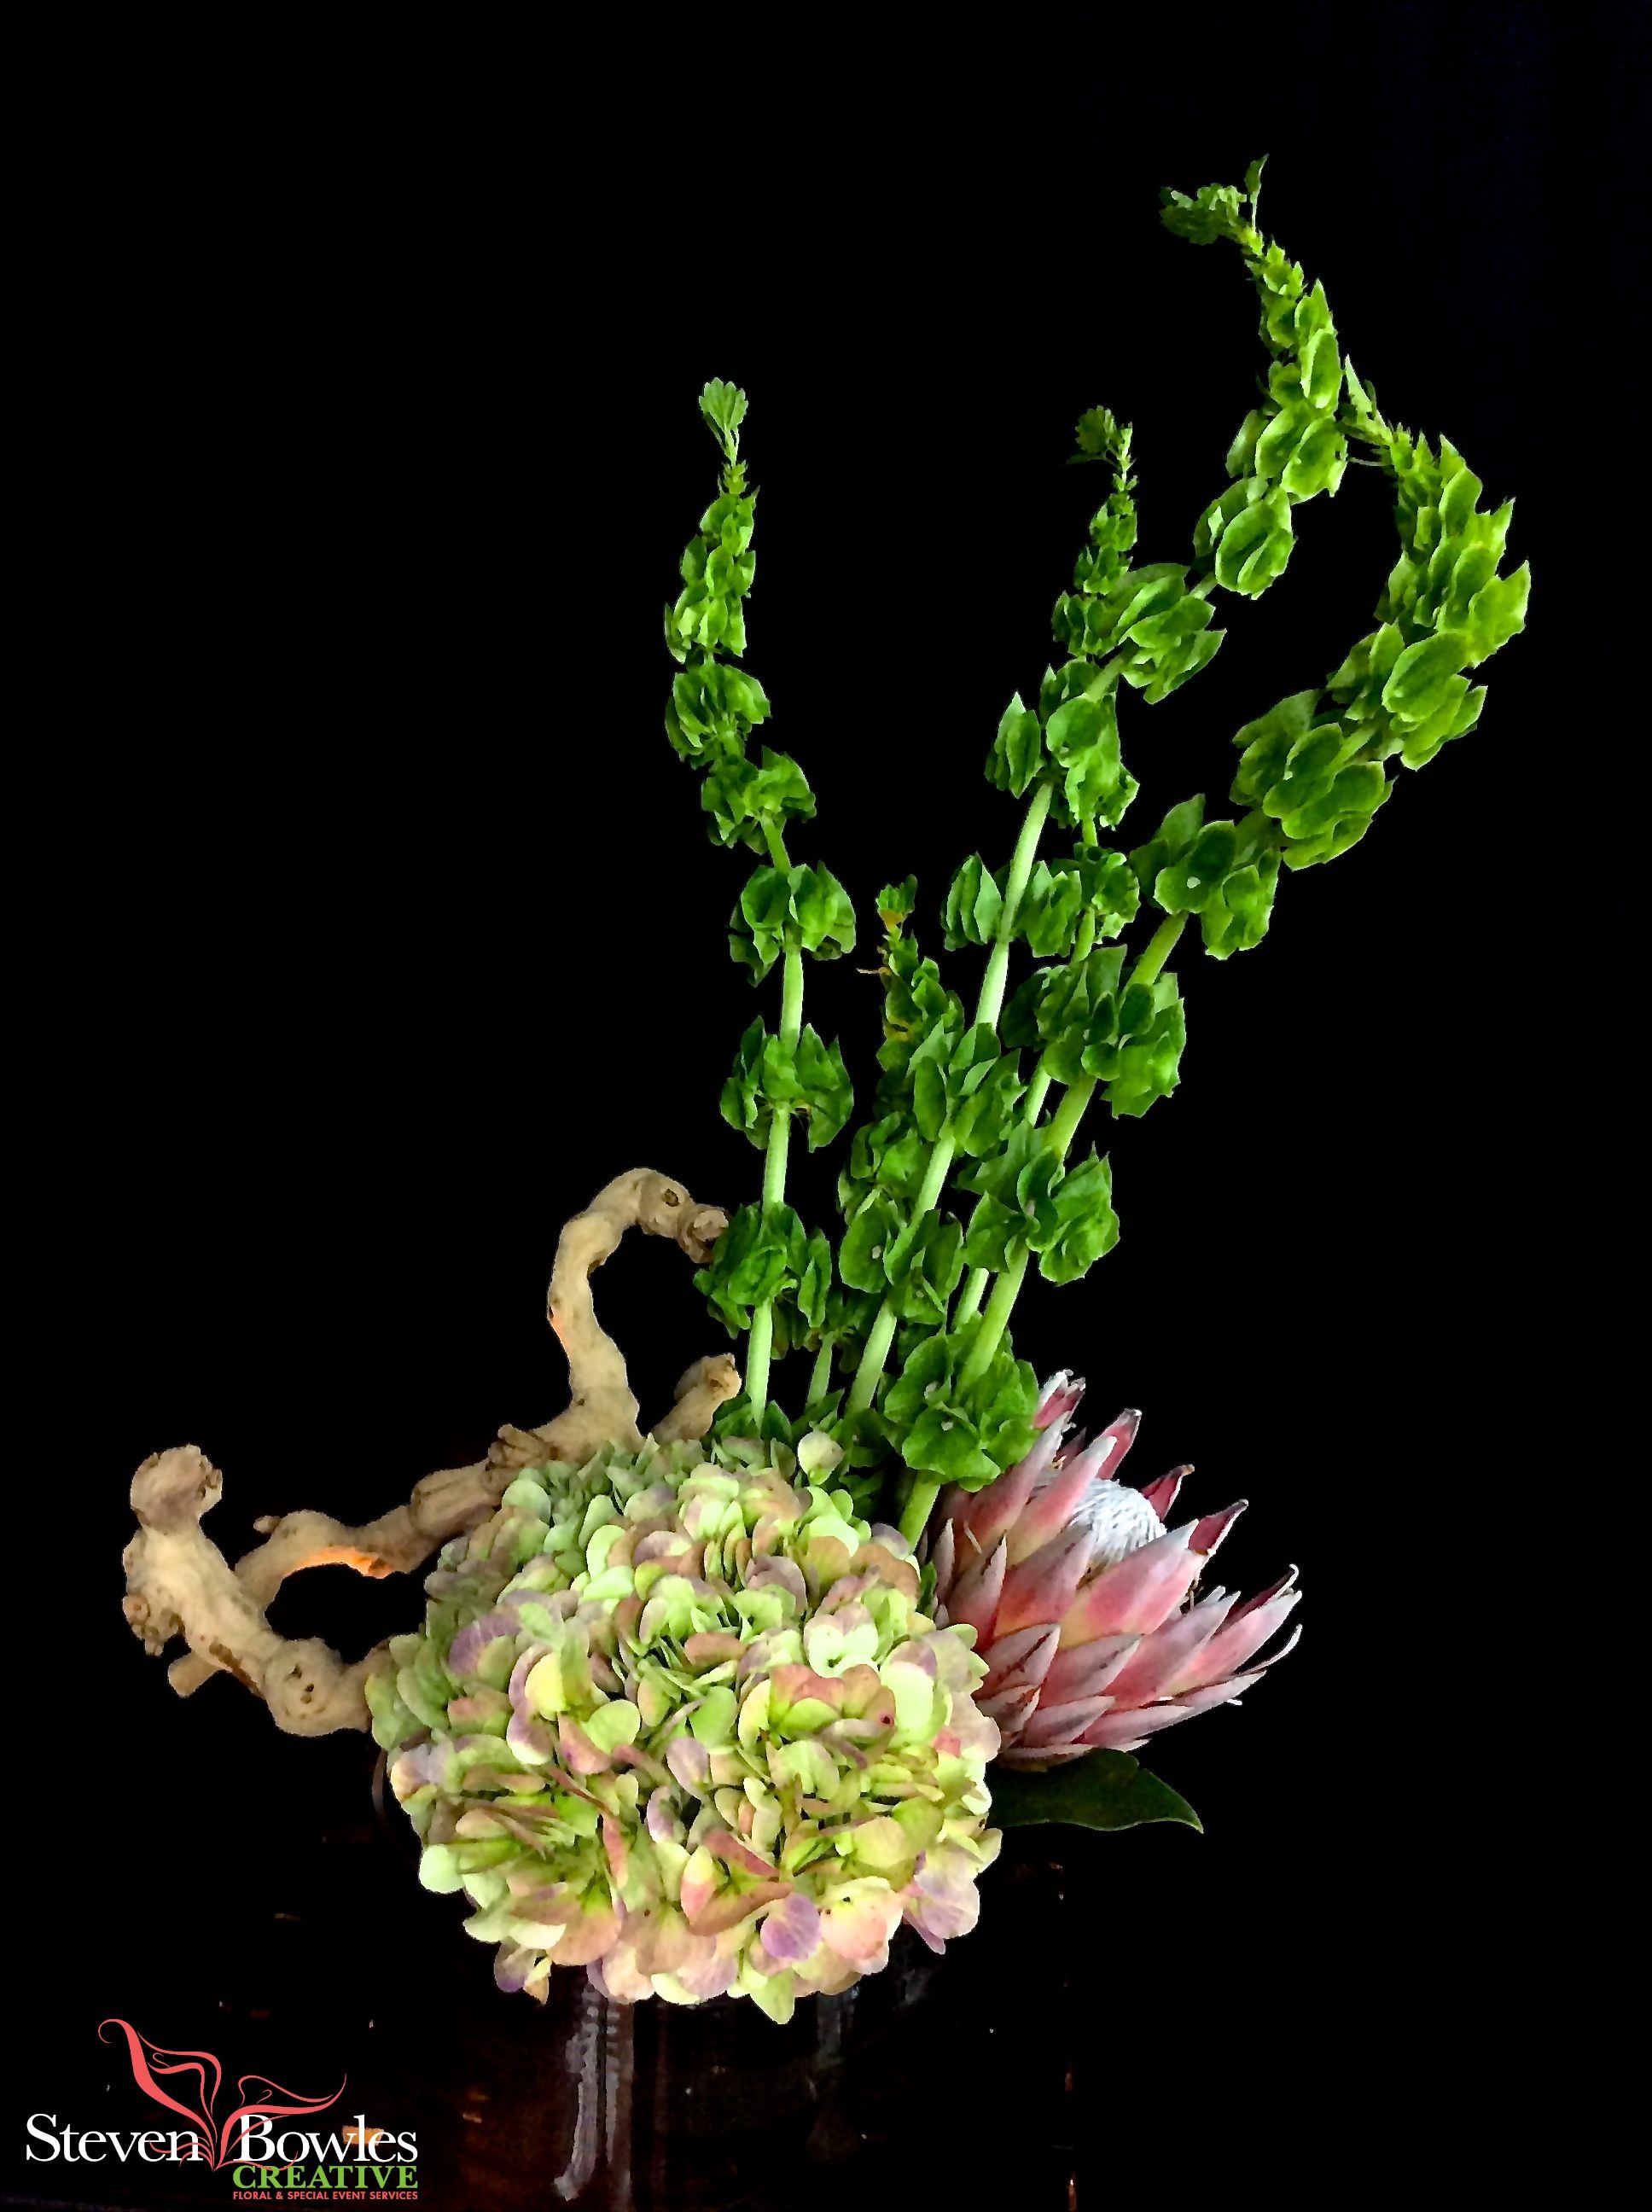 Modern flower arrangement of antique hydrangea, king protea, and bells of ireland. Designed by Steven Bowles Creative, Naples, FL floral and event designer. www.stevenbowlescreative.com